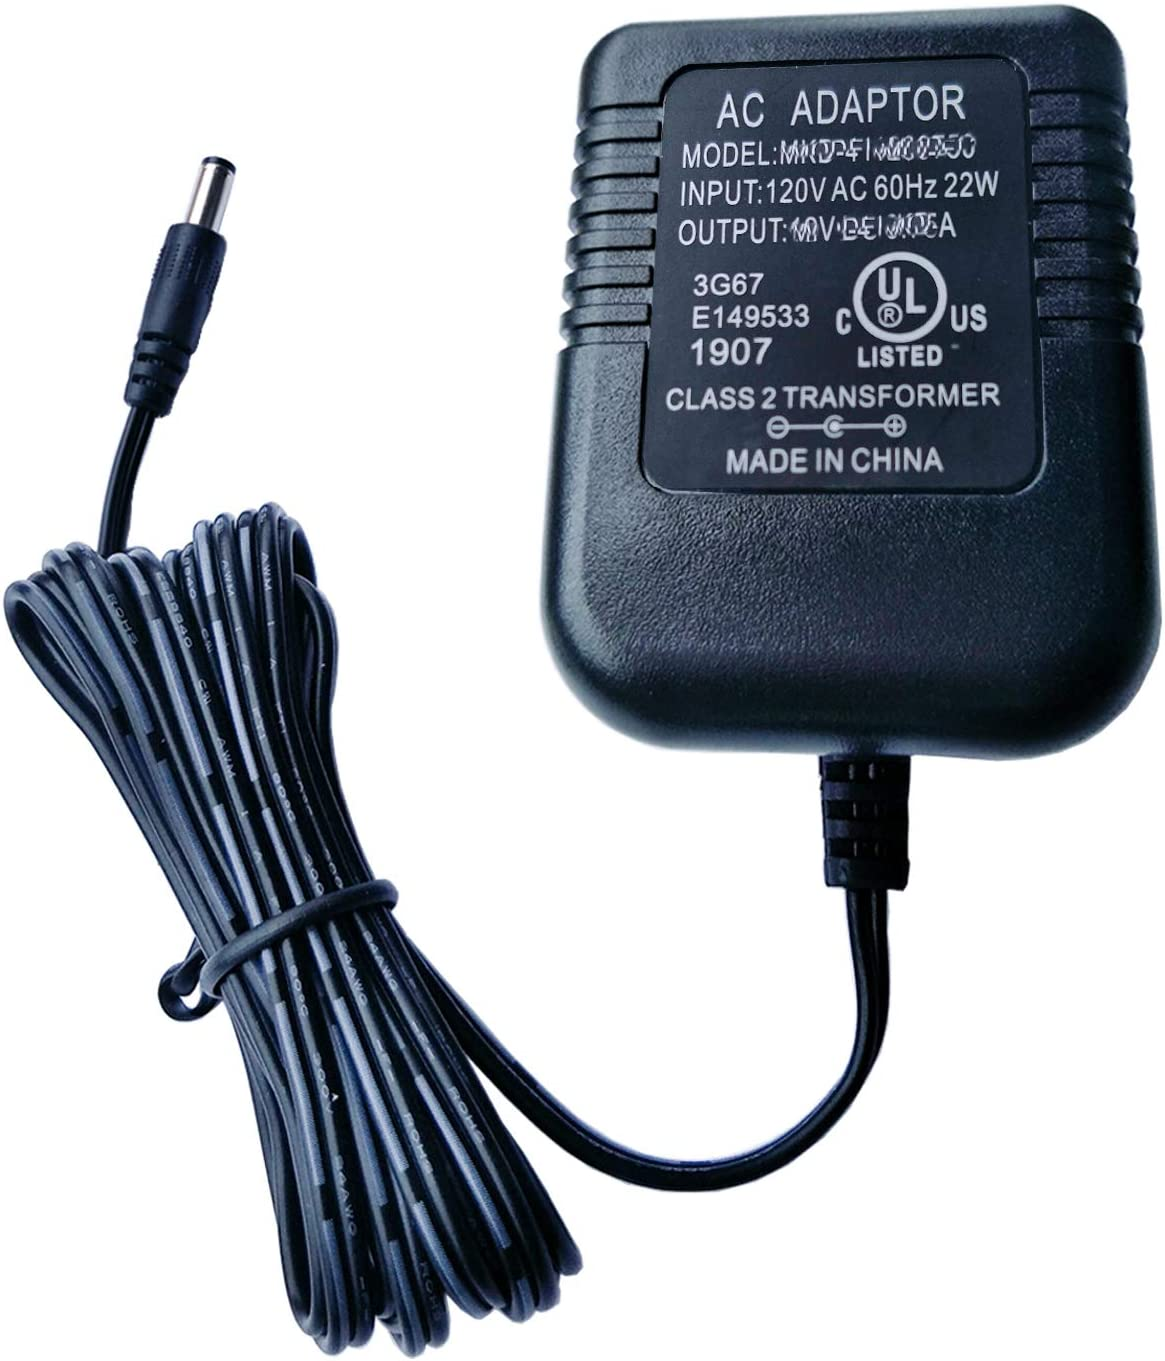 UpBright 15V AC/DC Adapter Compatible with Electrolux Ergorapido 108A EL1005A EL1006 EL1015A EL1016 EL2001 9.6V EL2081A 10.8V EL2050 12V EL1000A Vacuum SIL SSA-10W US 150015 Kings KU2B-150200D Charger